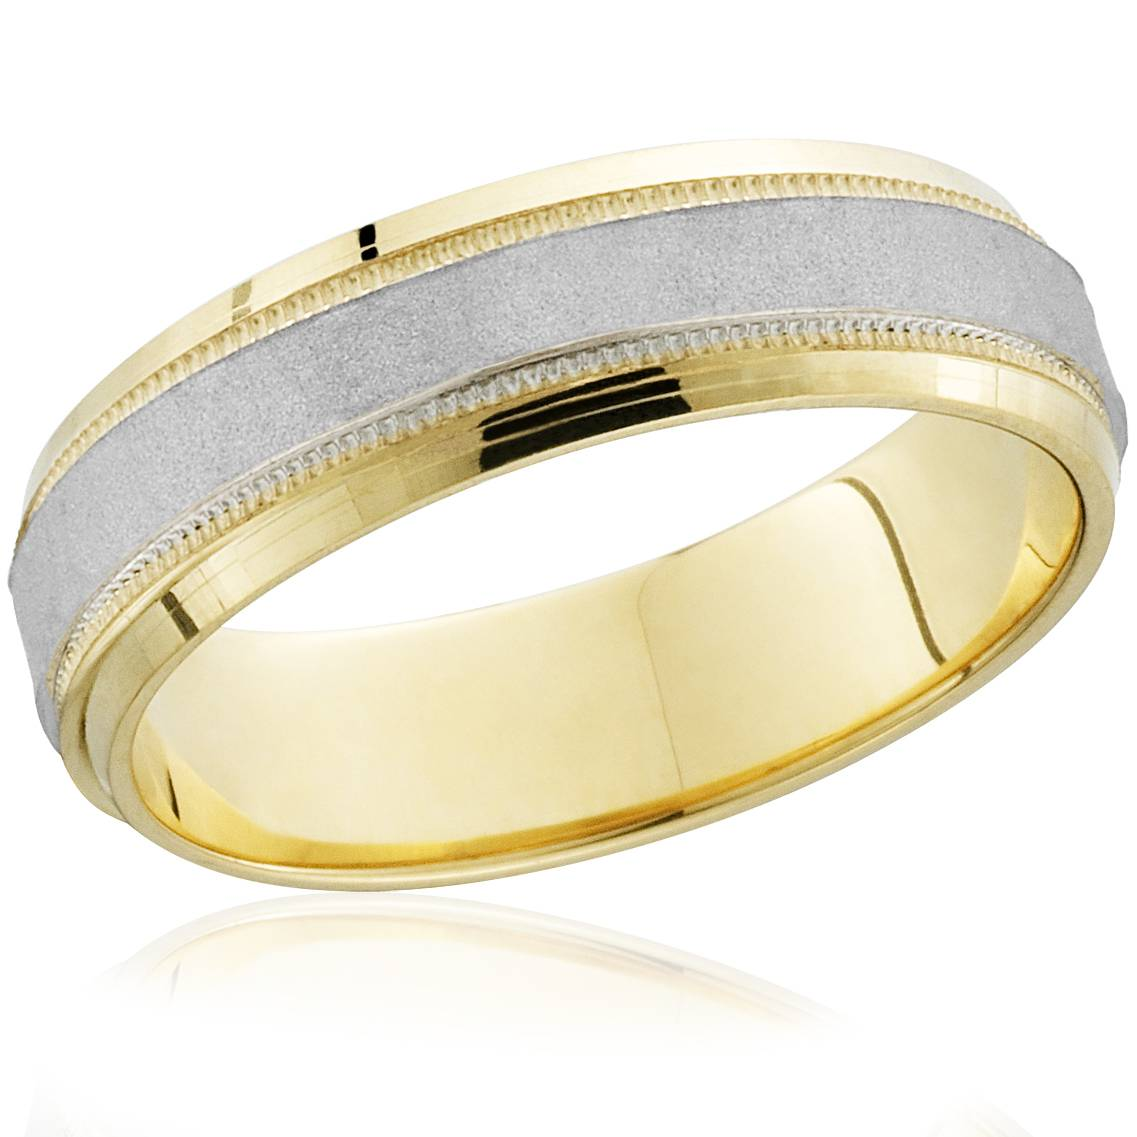 Mens Hammered Two Tone 14k White Amp Yellow Gold Wedding